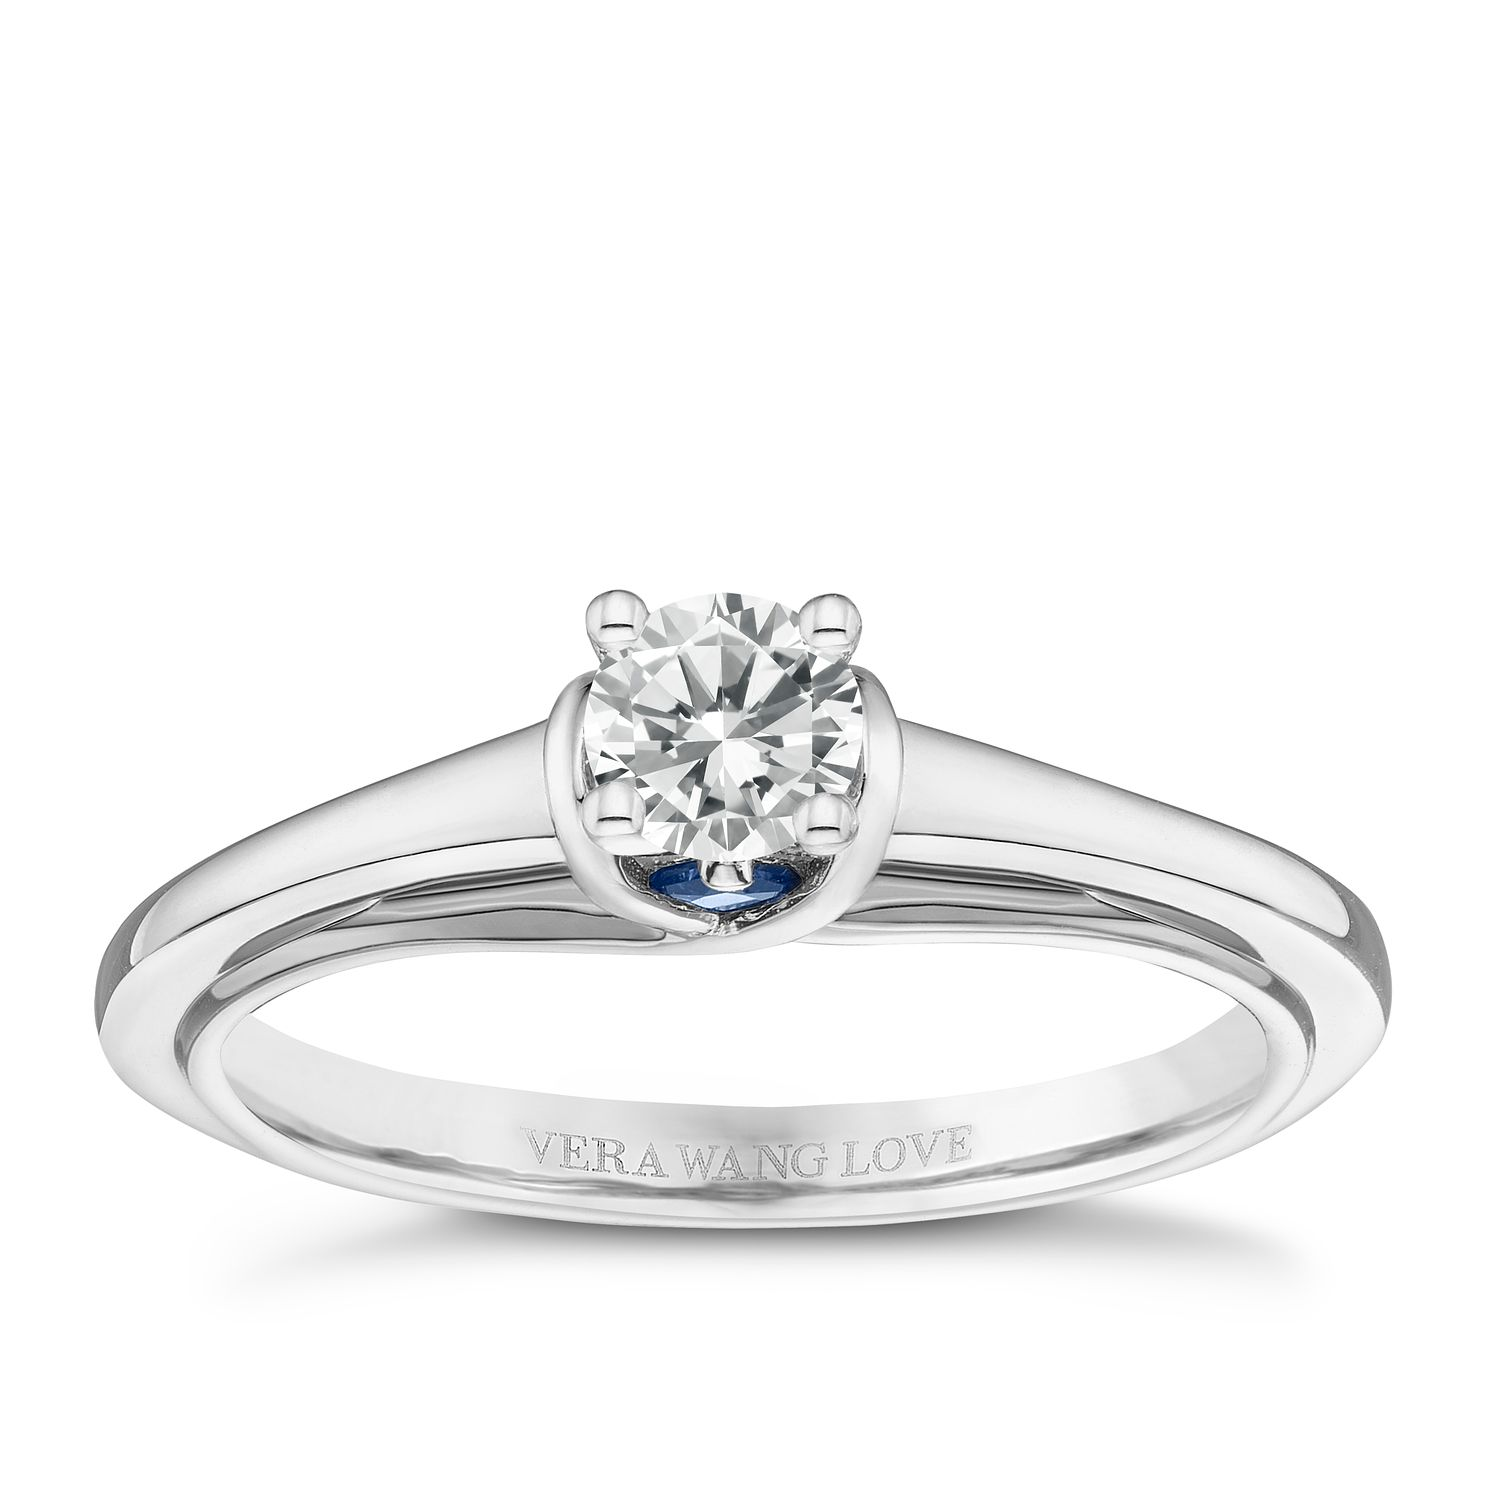 Vera Wang 18ct White Gold 0.30ct Diamond Solitaire Ring - Product number 8370648